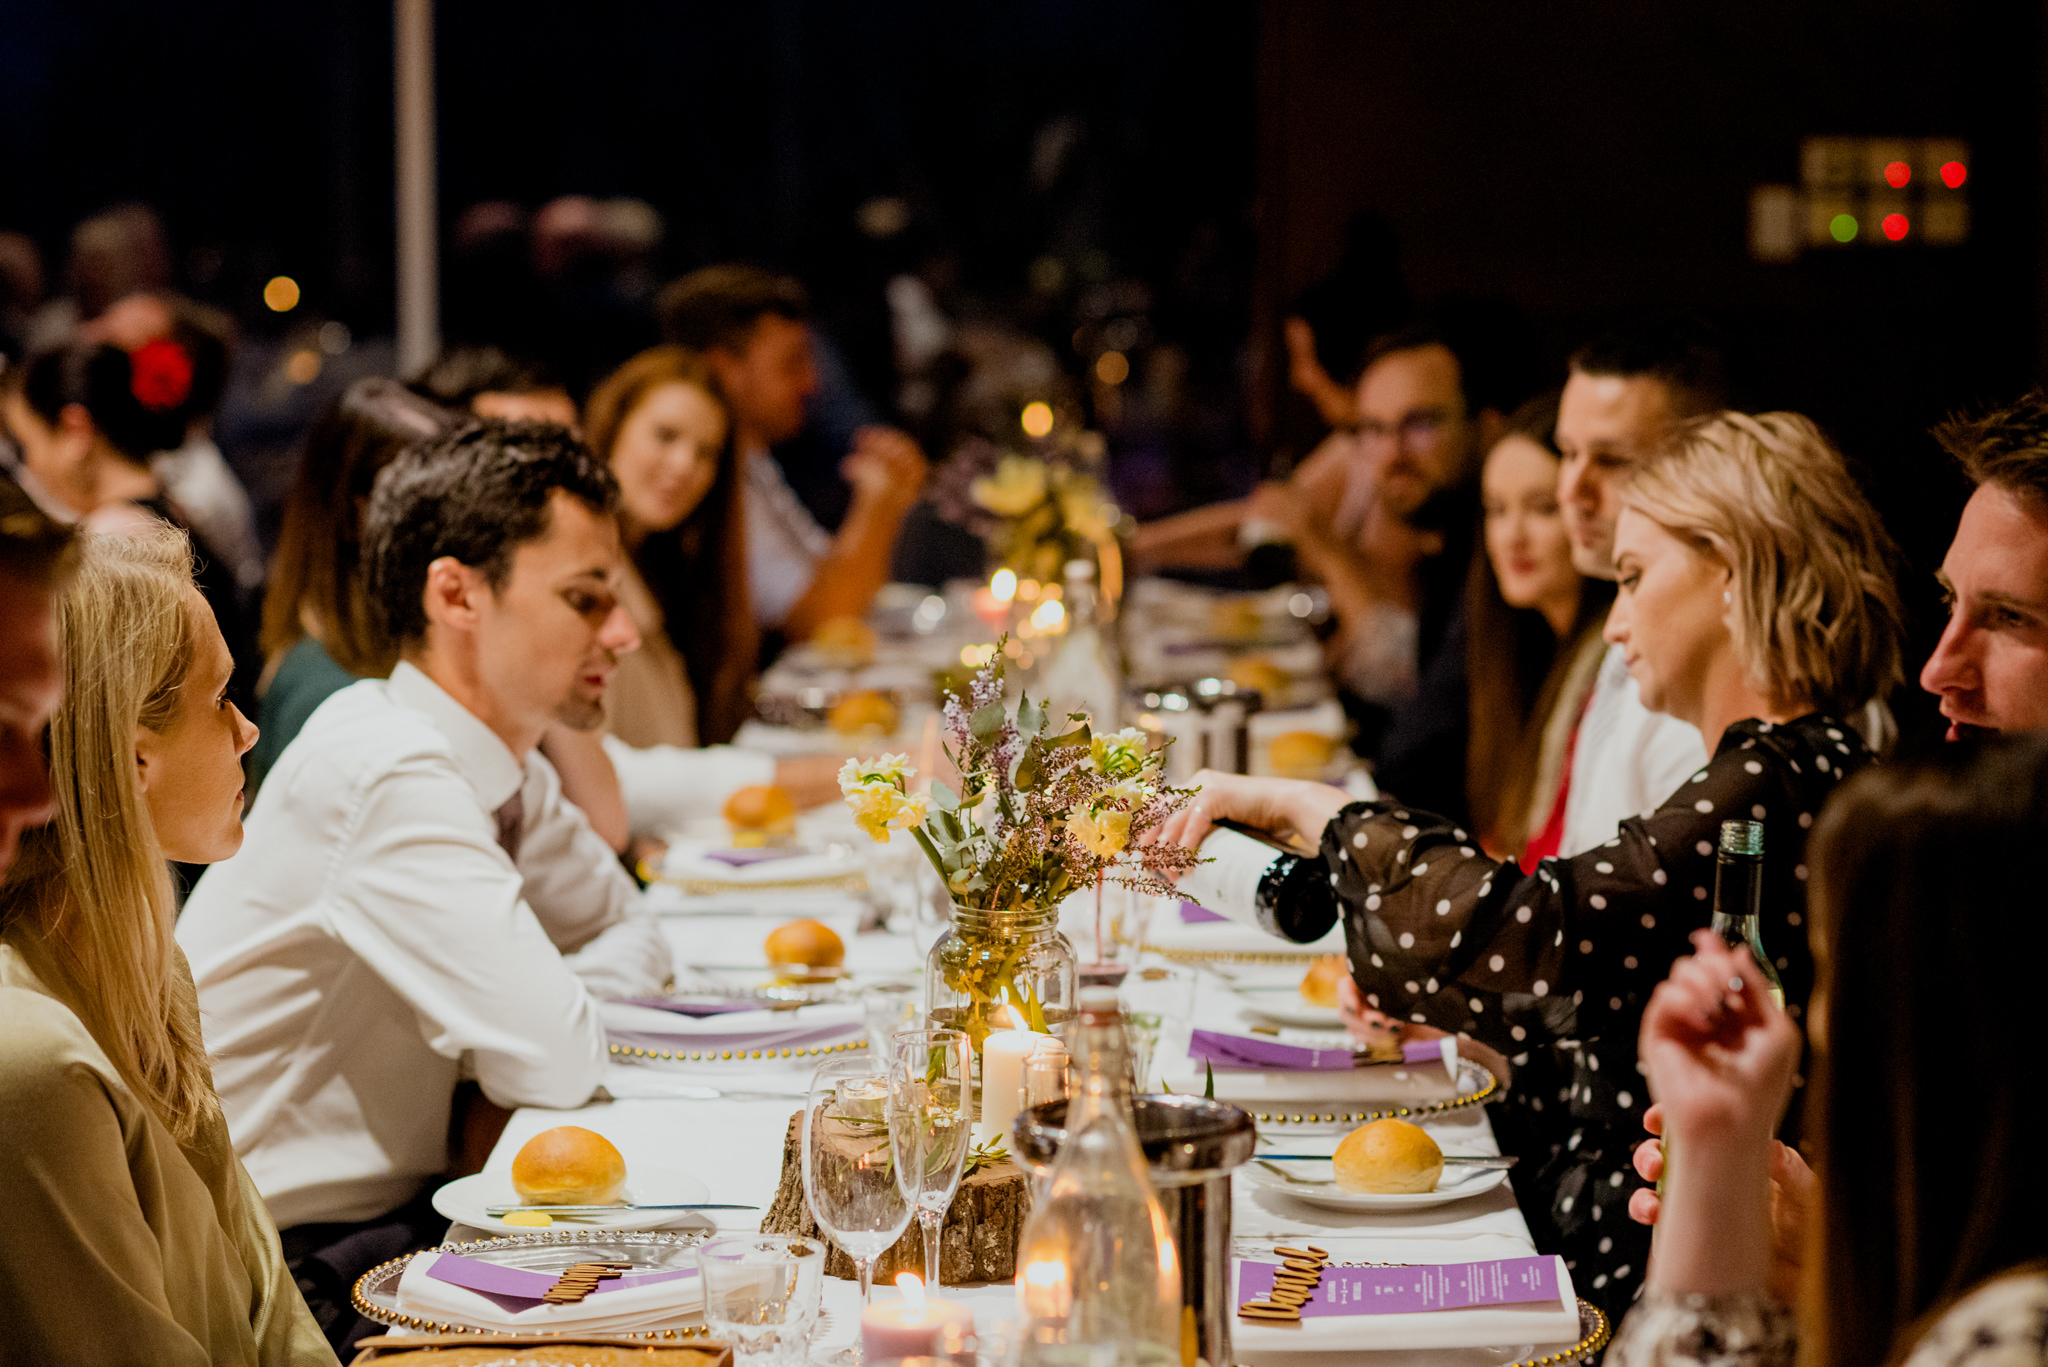 Dinner guests sit and mingle on long tables with flowers in the middle